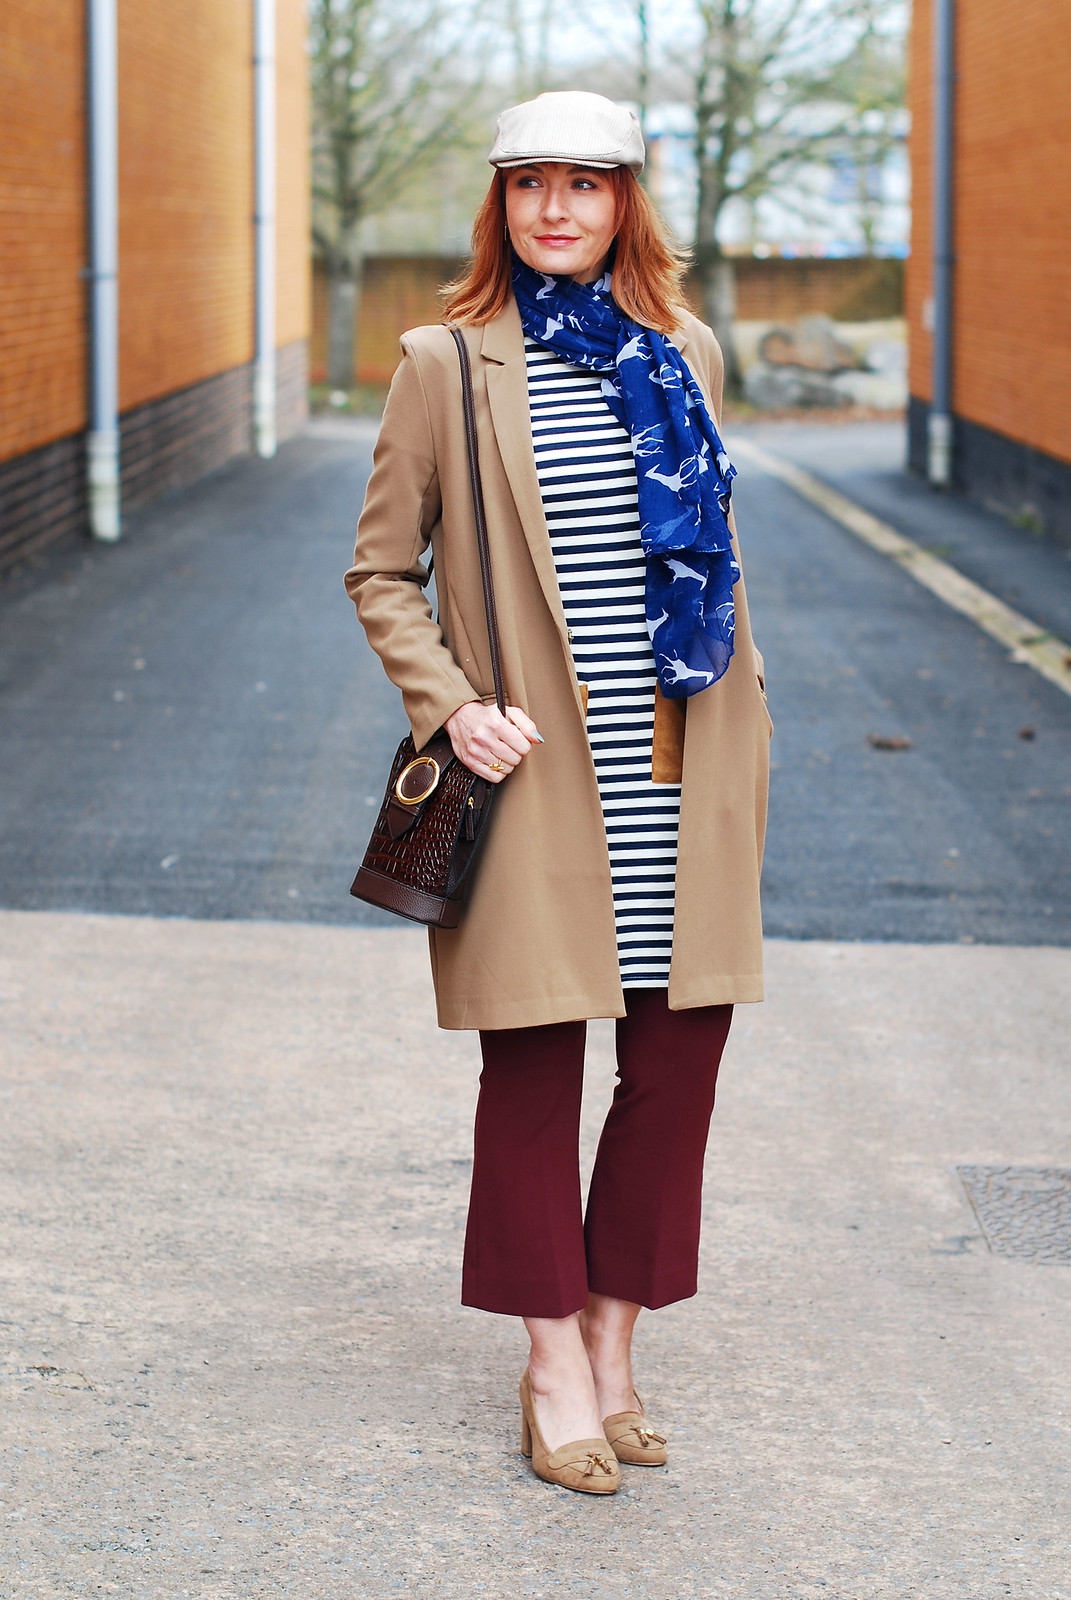 Styling a preppy stripe summer dress in autumn/winter: Camel longline blazer  stripe tunic dress with patch pockets  kick flare burgundy trousers  heeled loafers  crossbody bag  stone flatcap for women | Not Dressed As Lamb, over 40 style